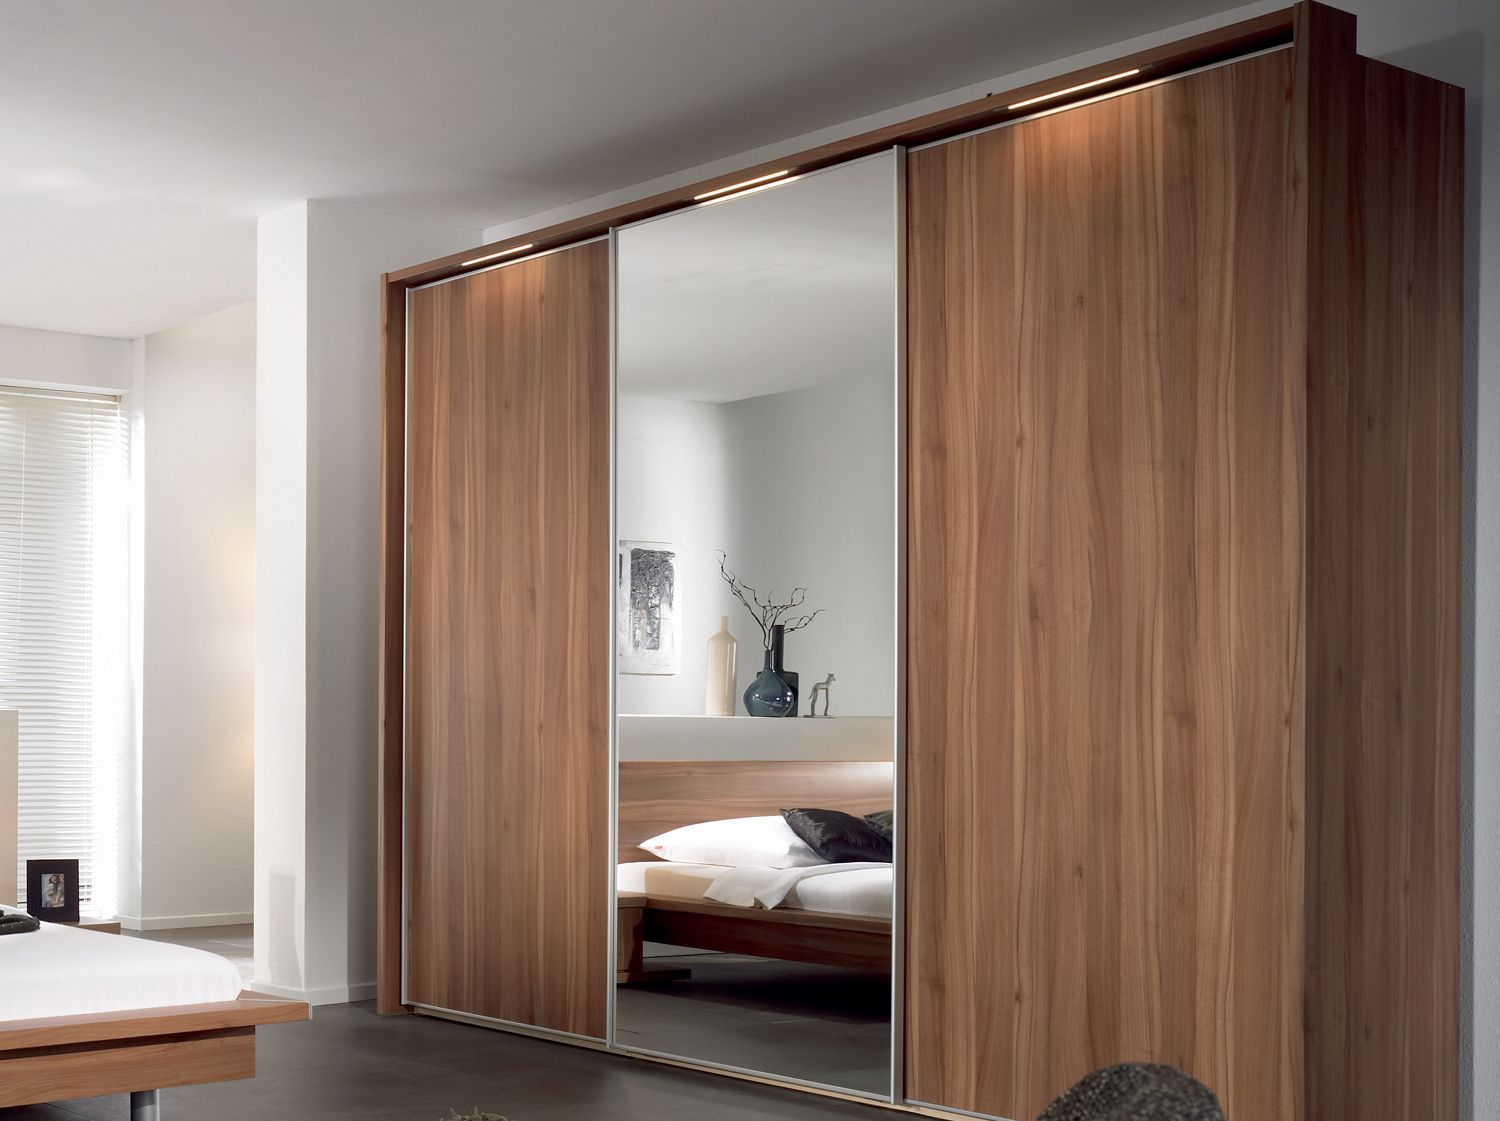 Furniture, Sliding Wardrobe Designs With Mirror For